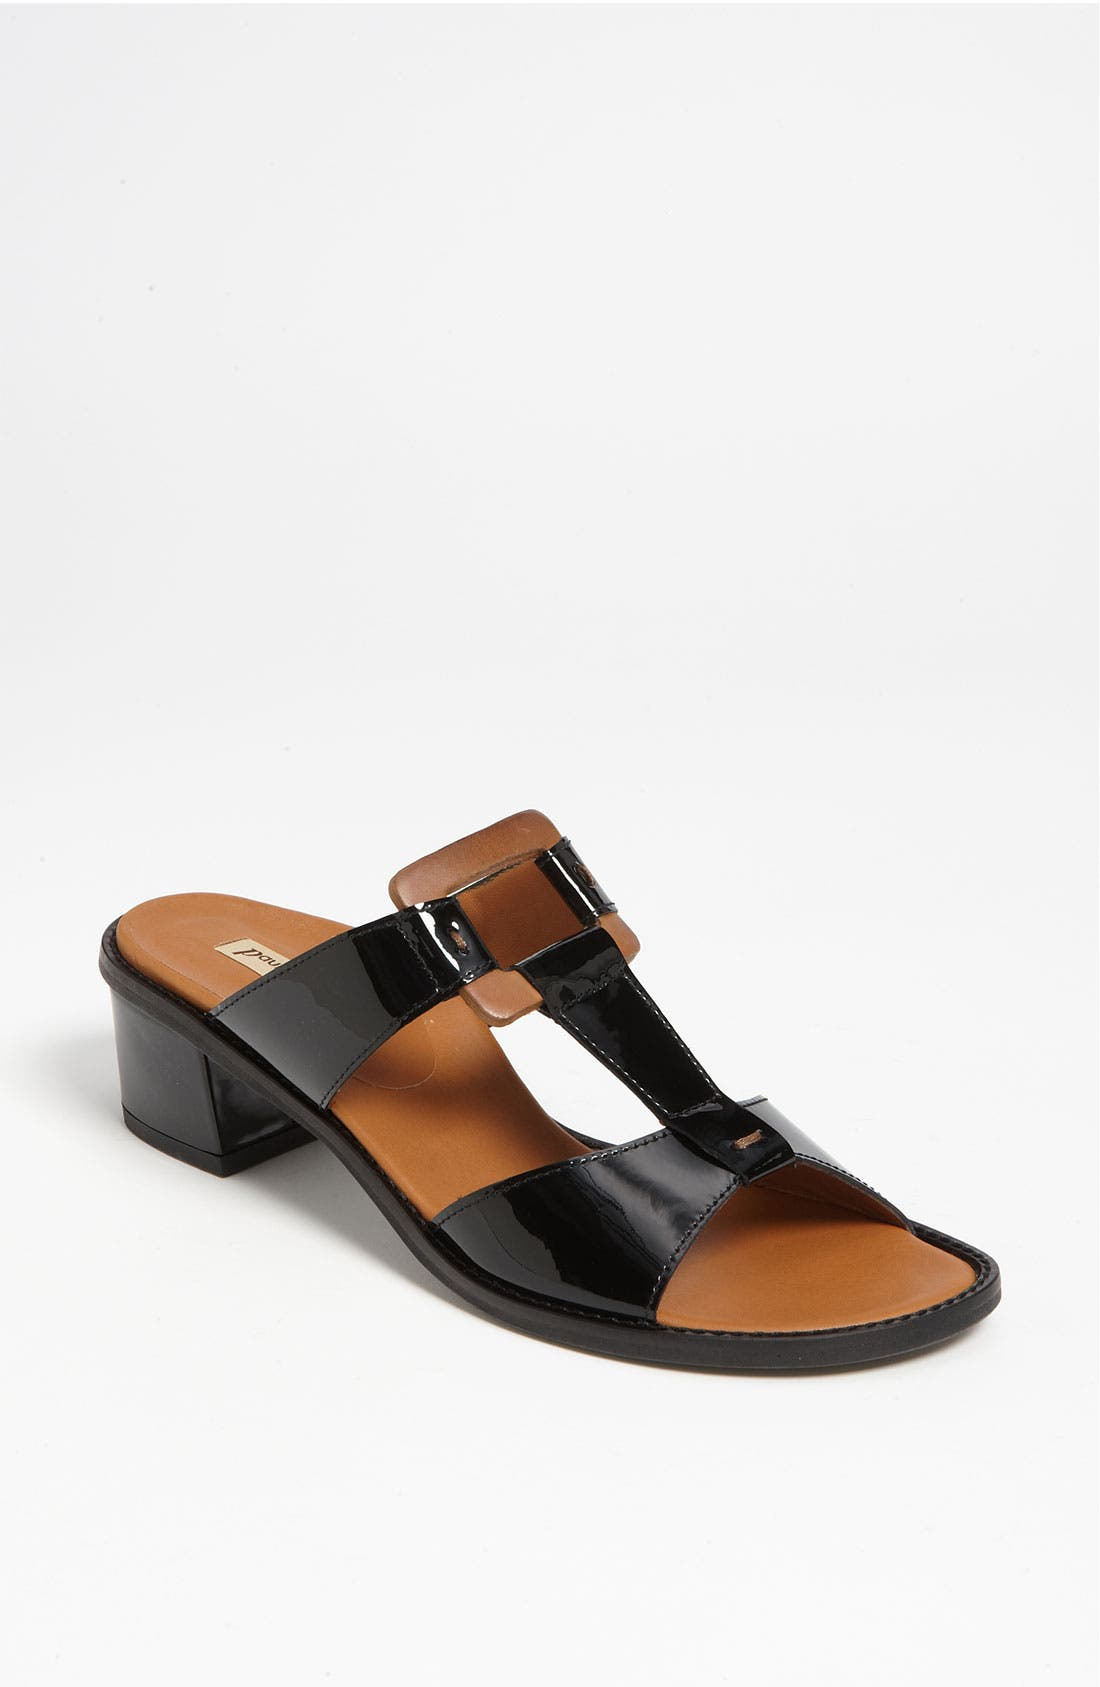 Main Image - Paul Green 'Niko' Sandal